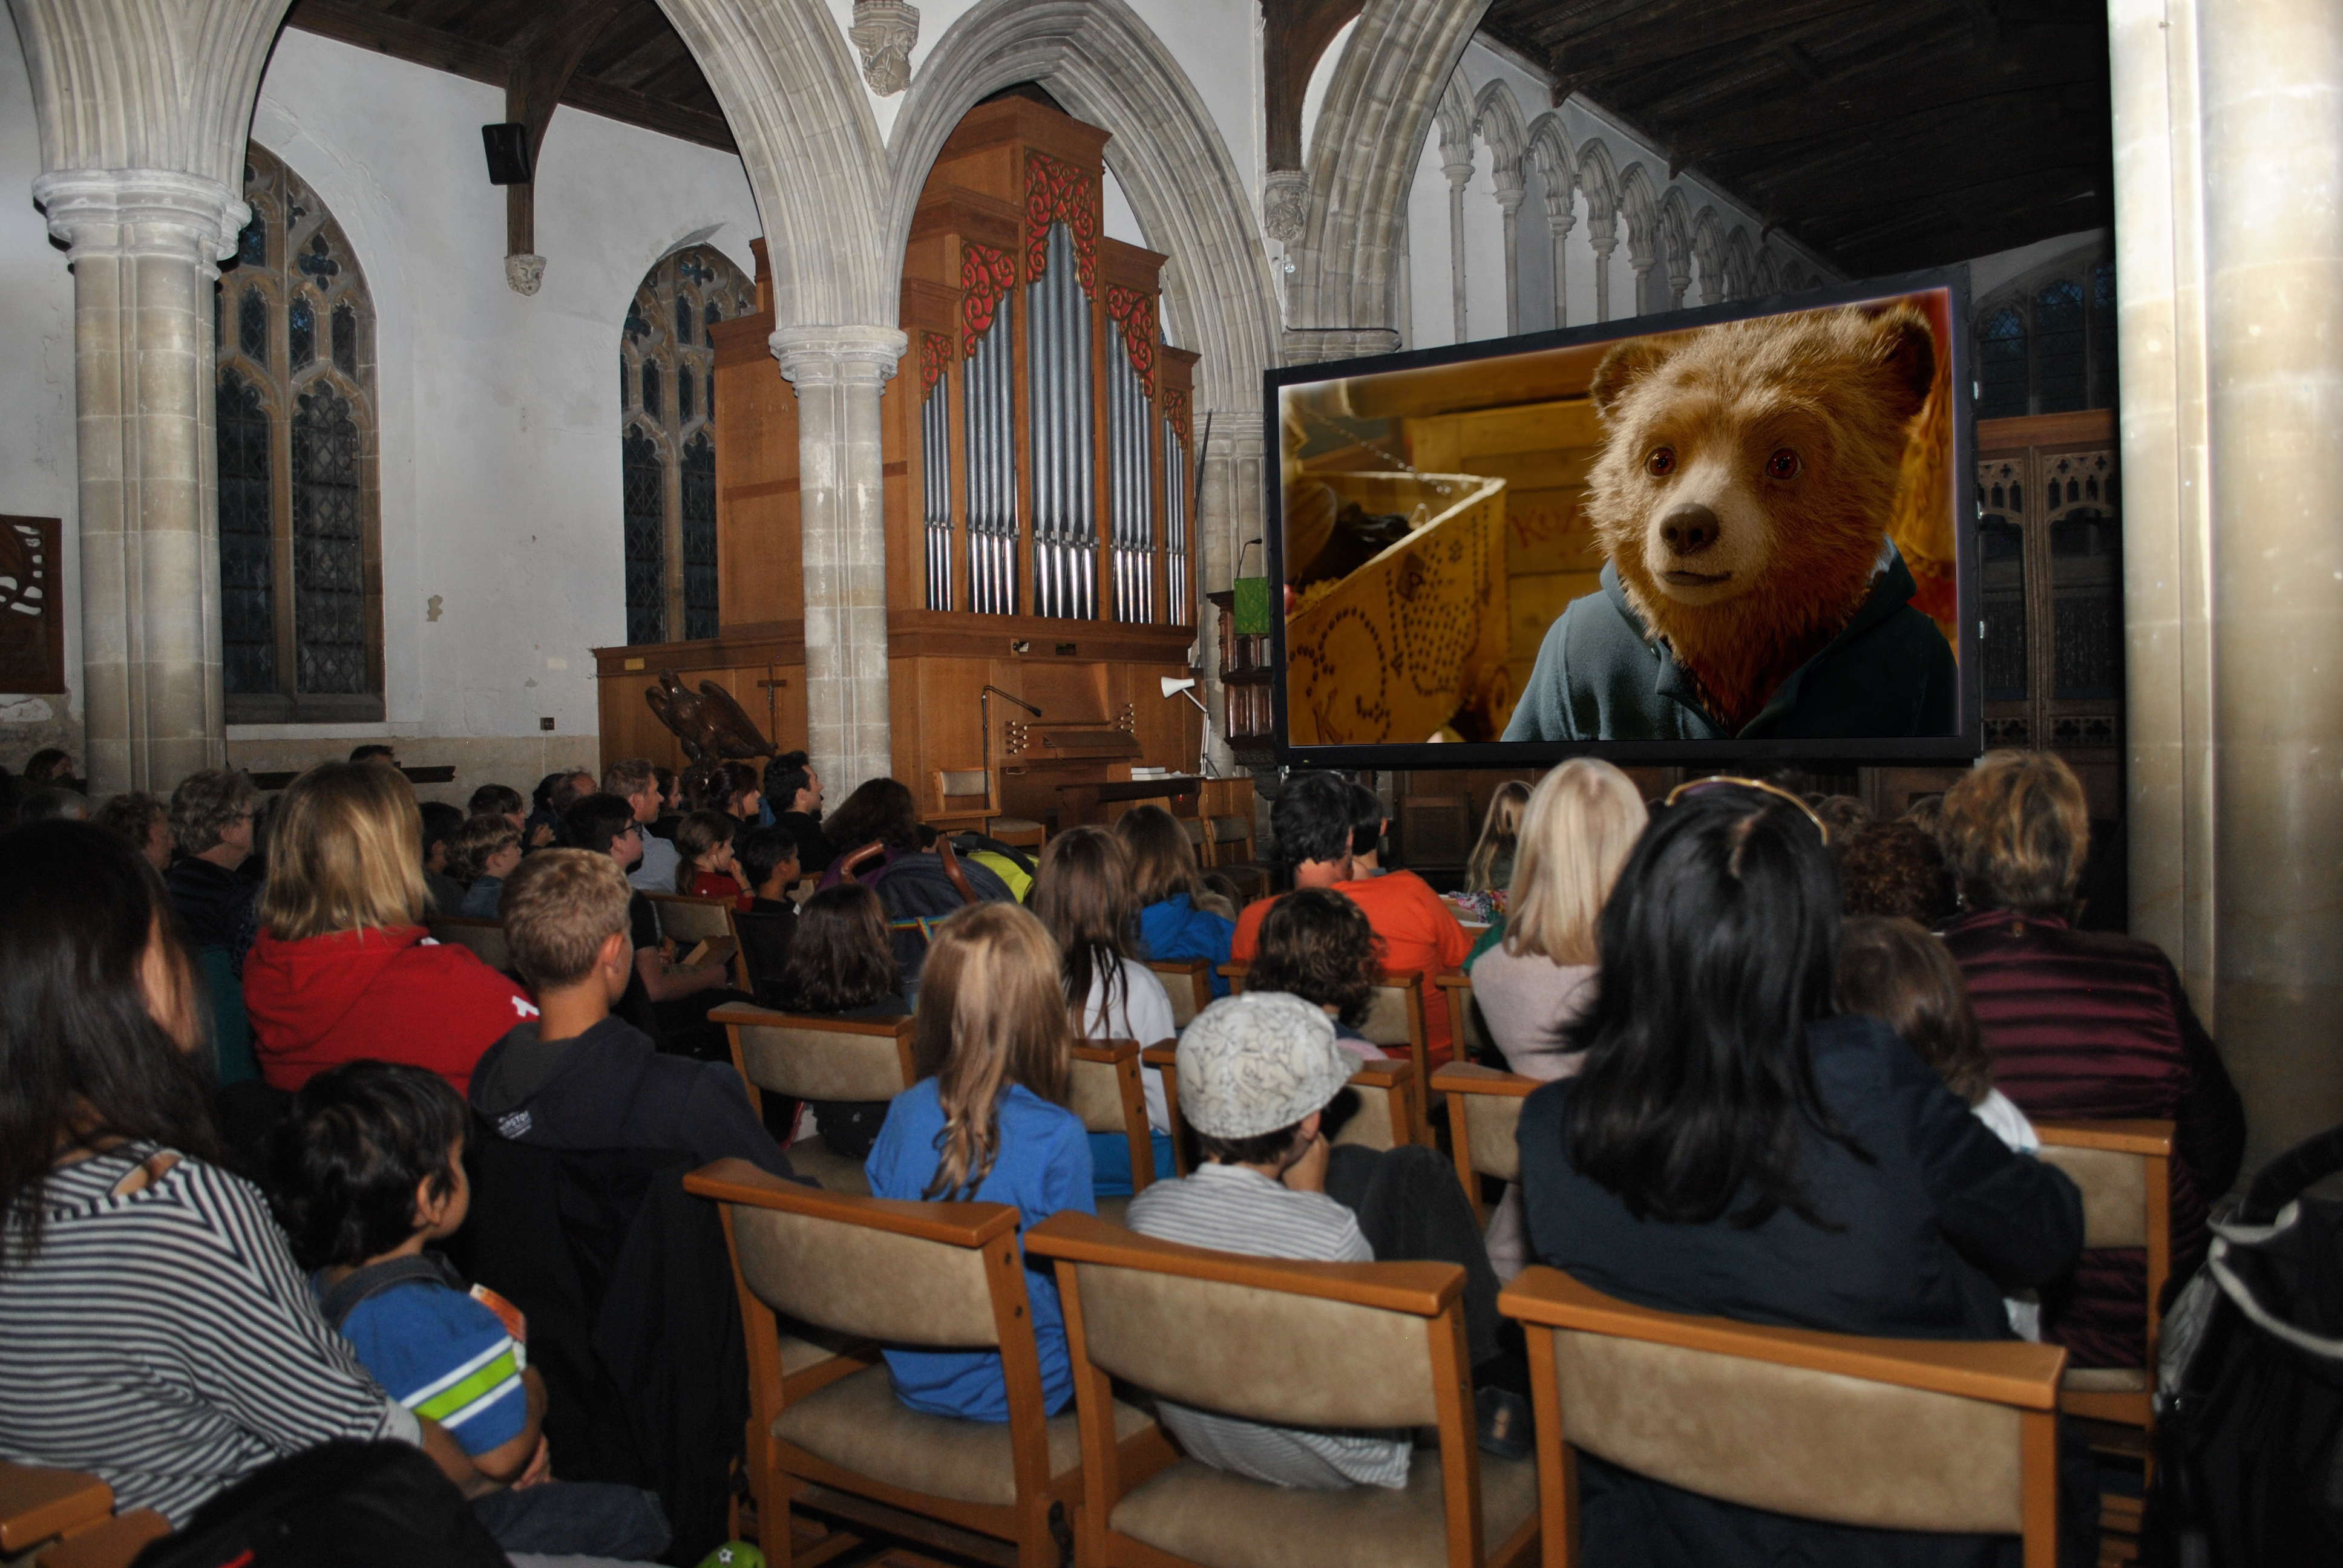 people watching paddington in a church